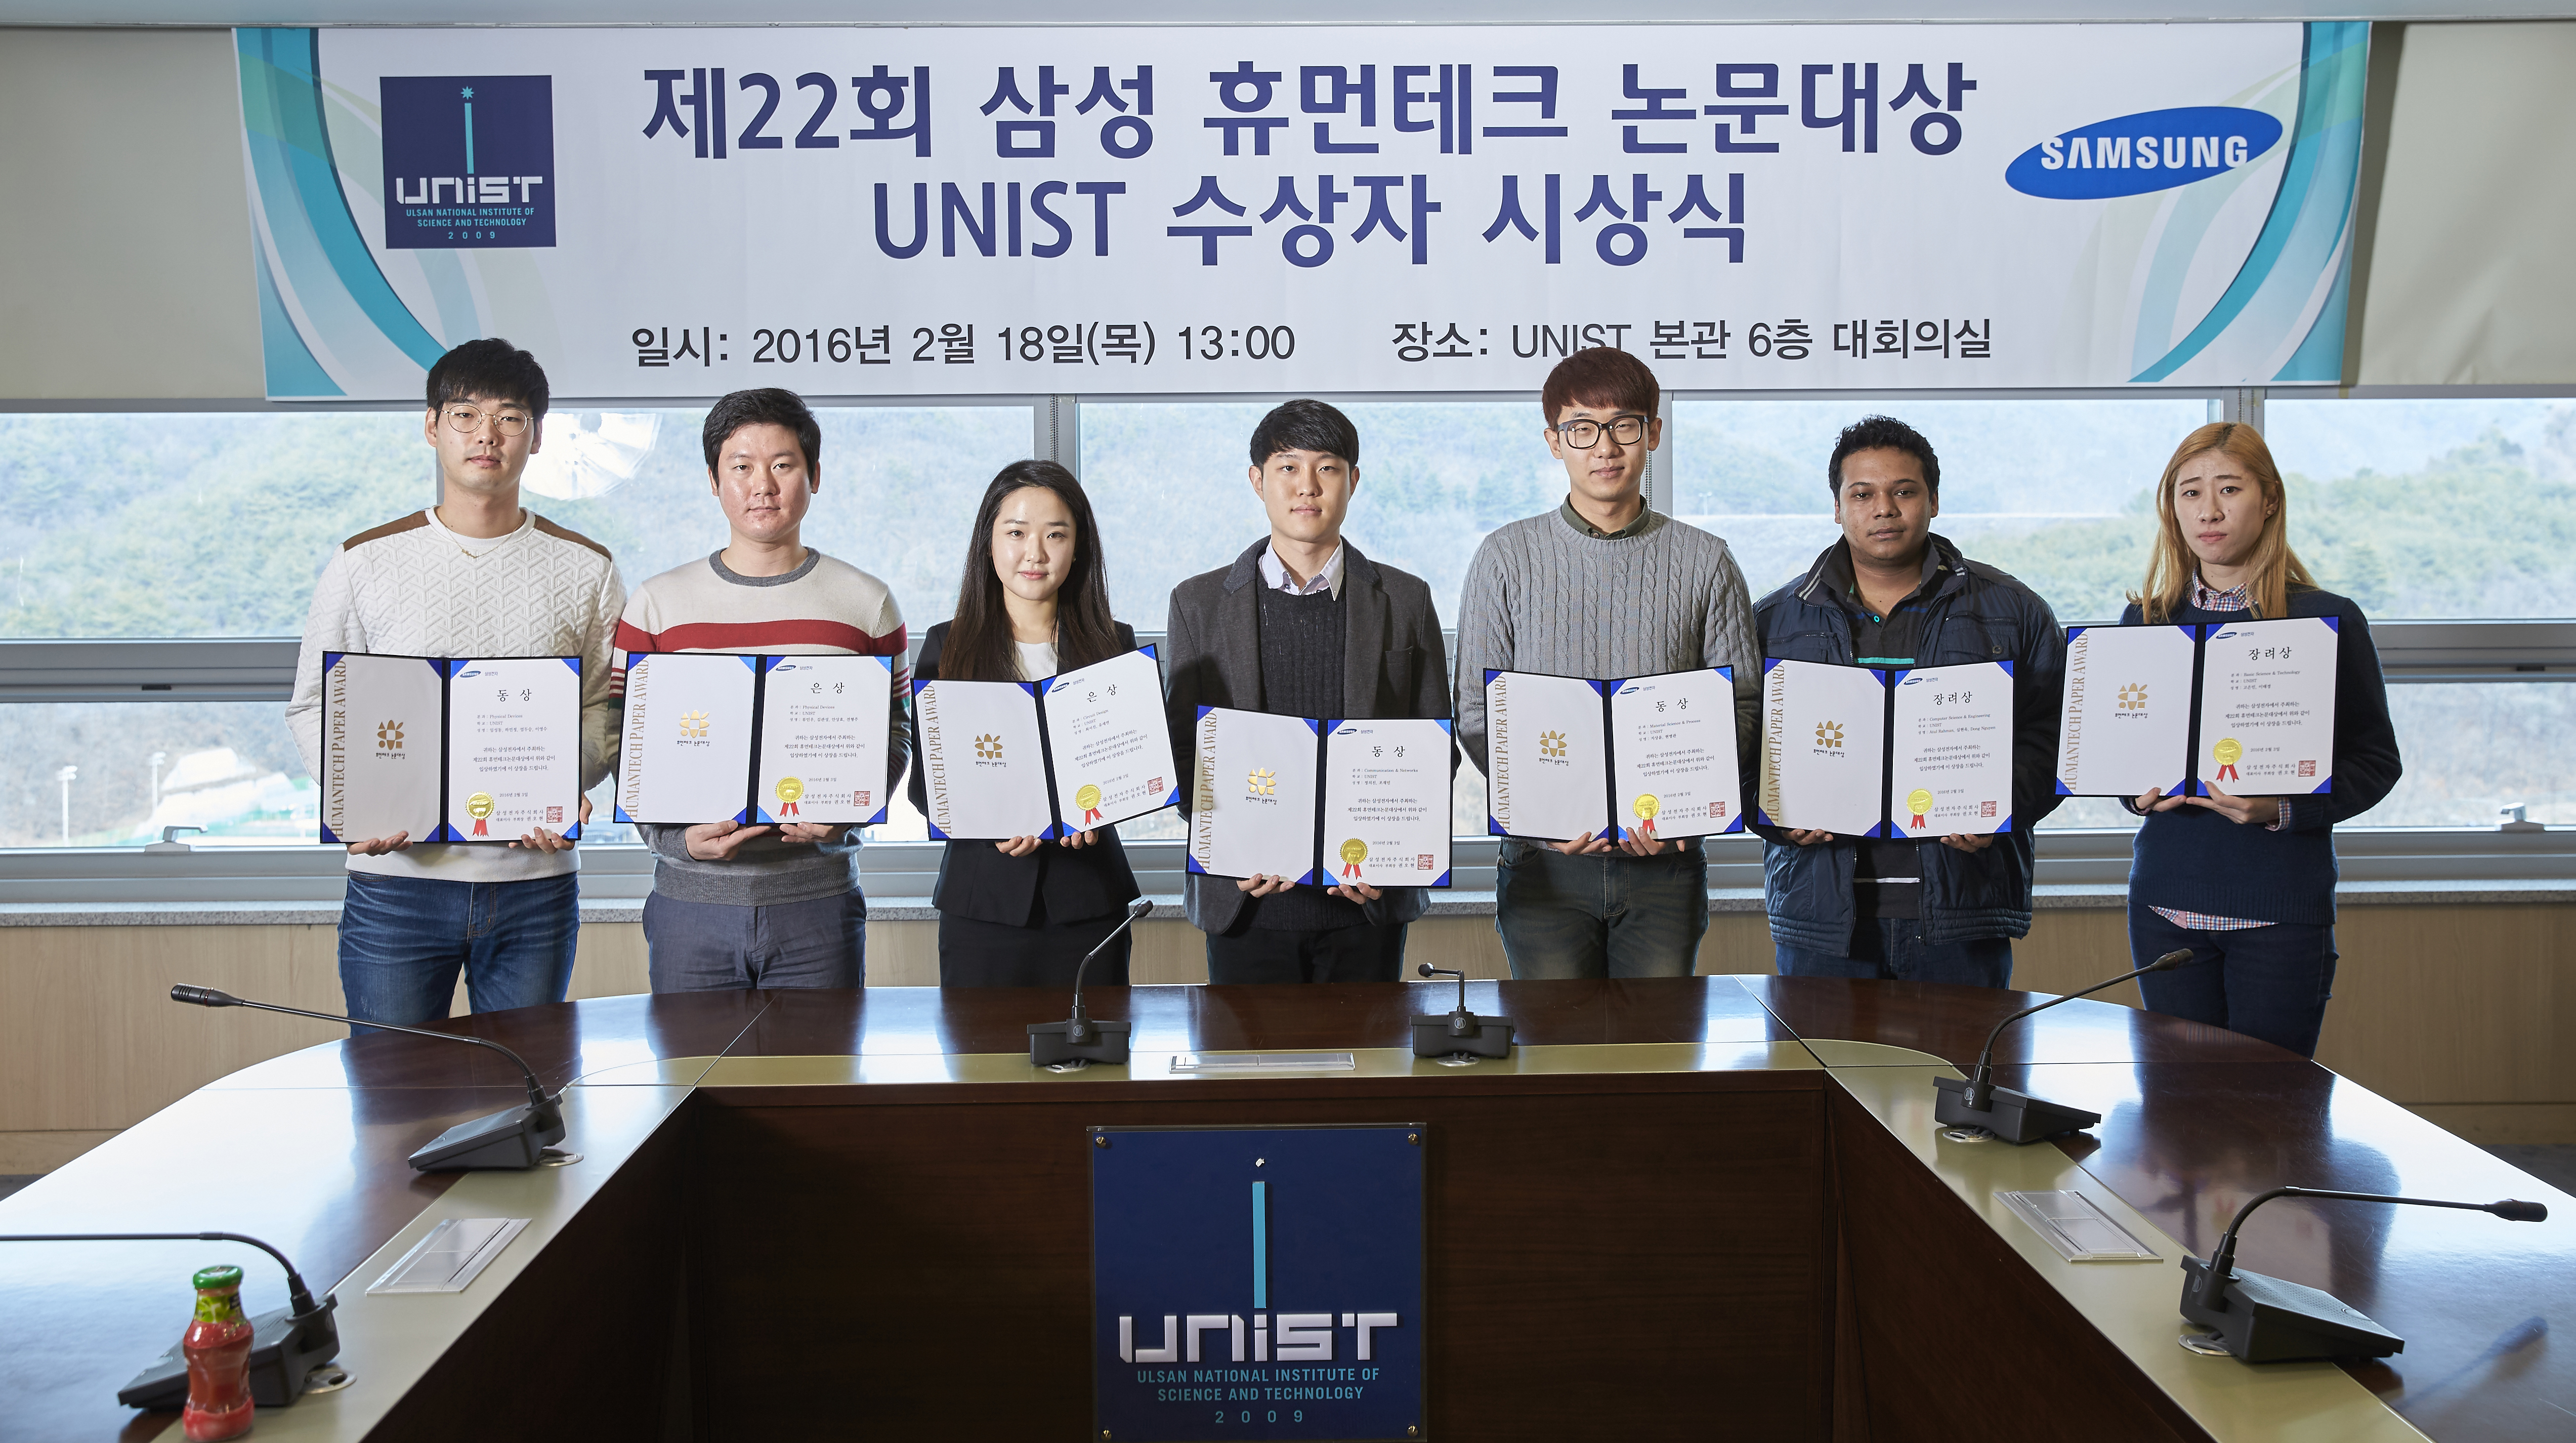 humantech thesis Seungseok oh received a silver 2003 humantech thesis prize, at the event hosted by samsung electronics, korea, for a paper entitled a general framework for nonlinear multigrid inversion.